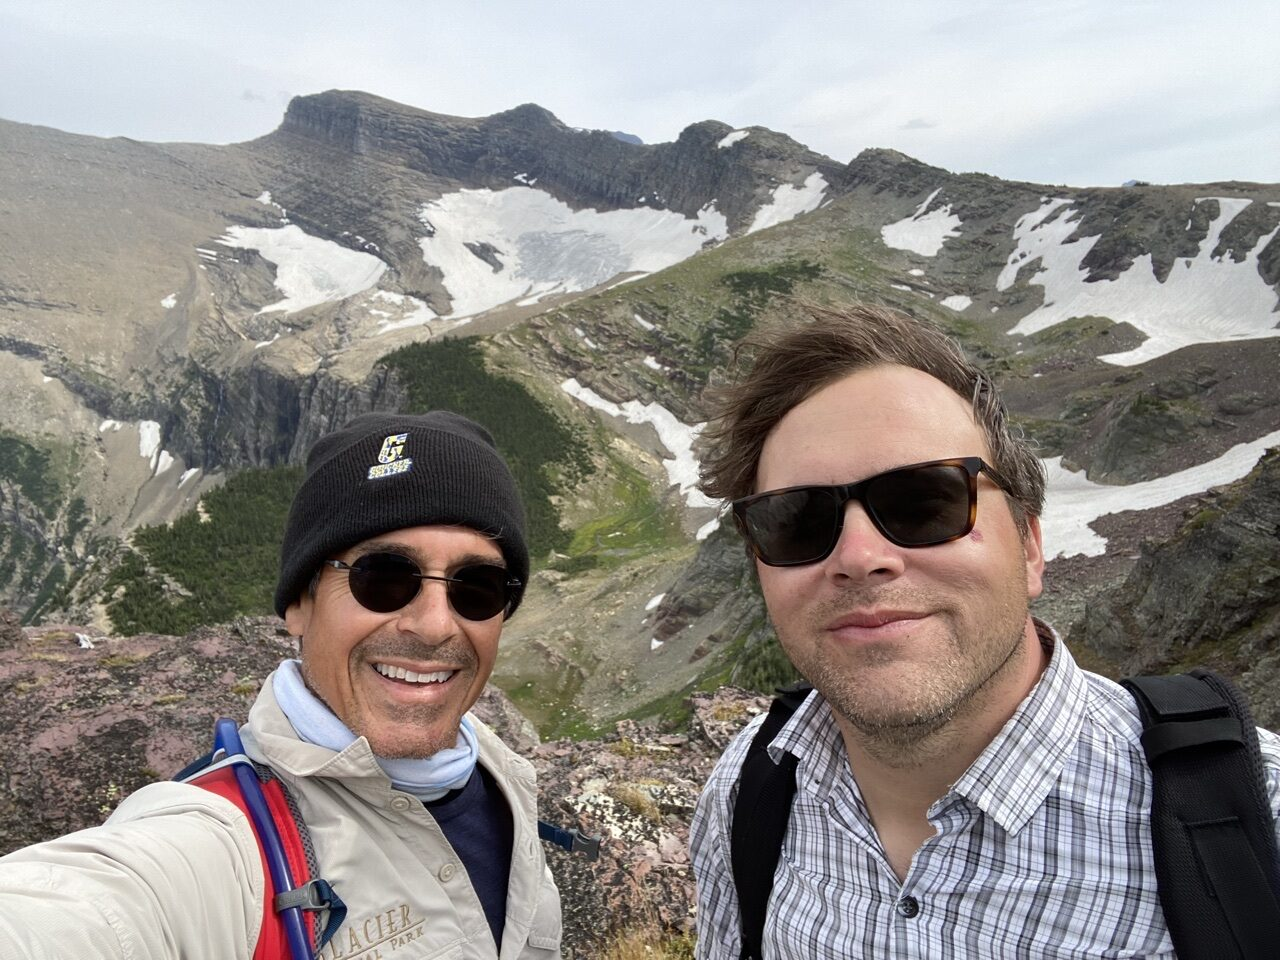 Jeff noel and Jody Maberry in mountains